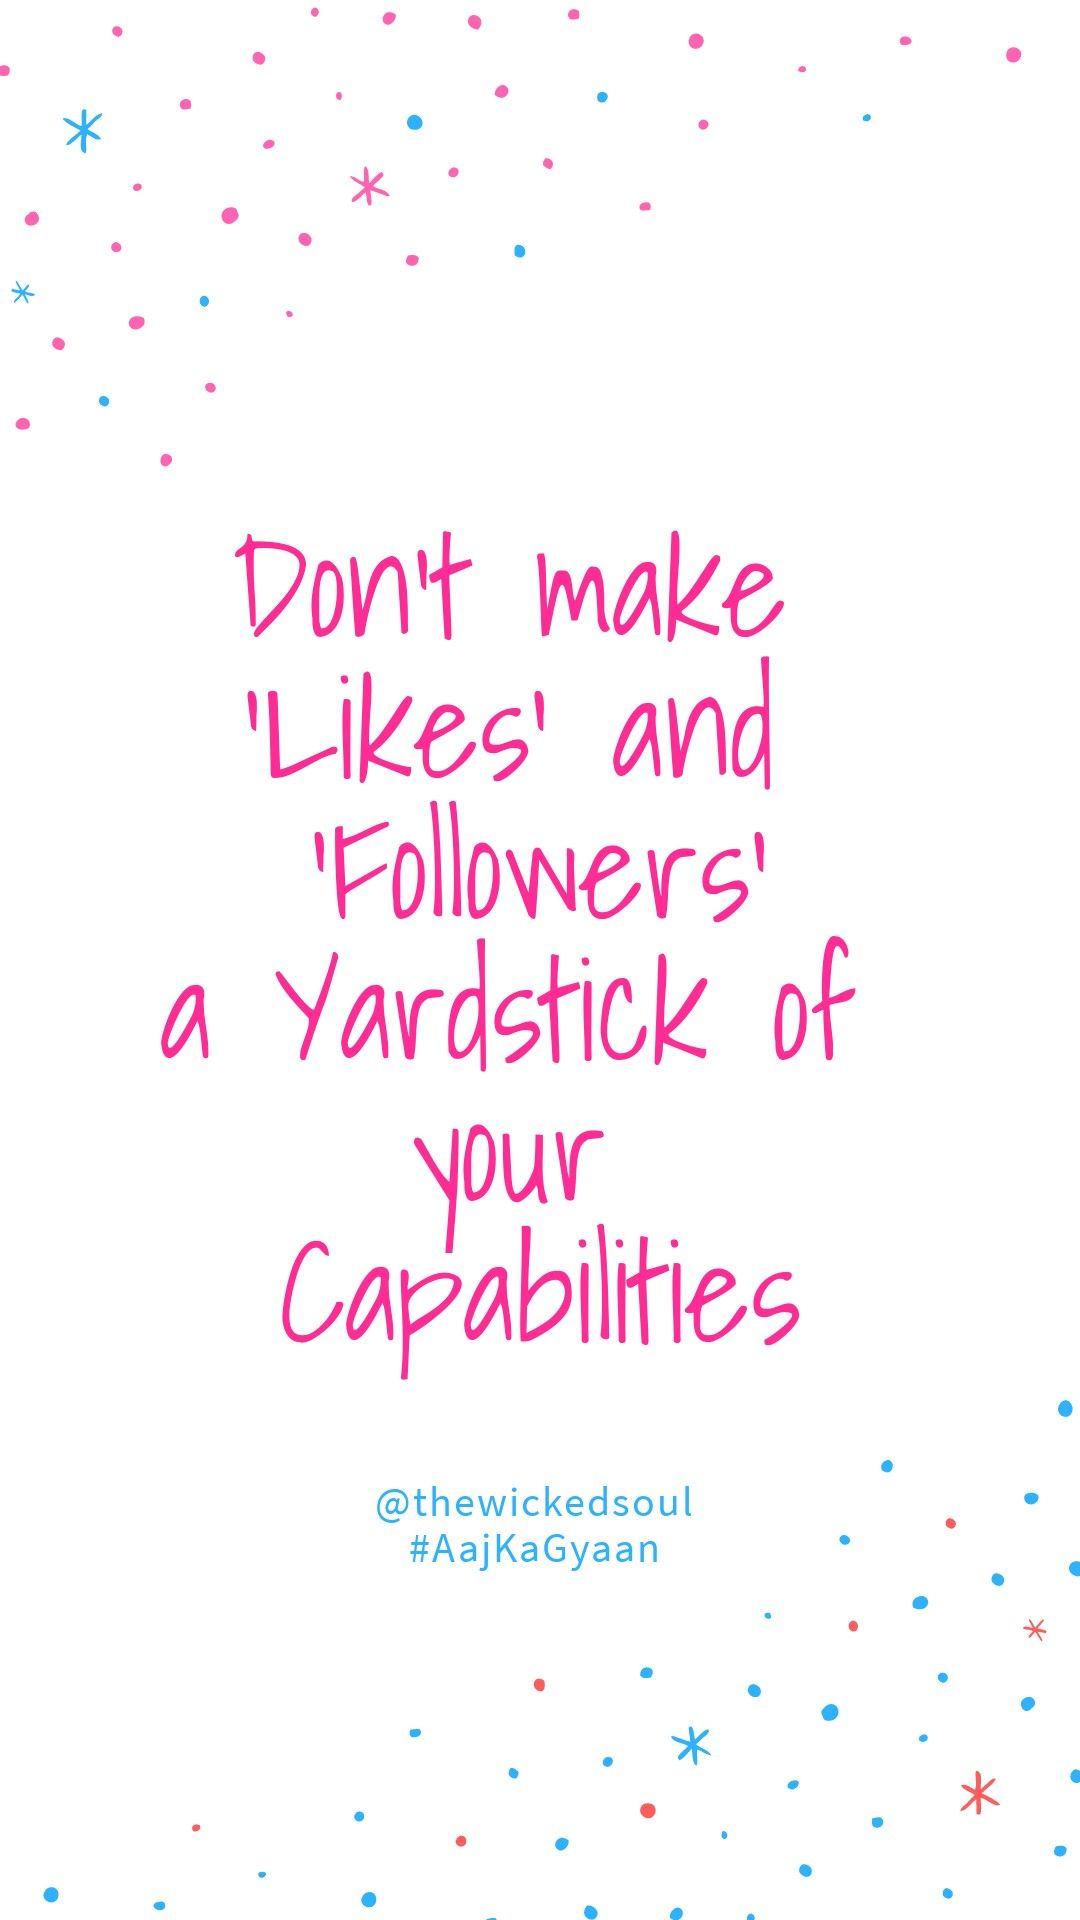 Do Not Measure Your Capabilities With Likes Followers On Instagram Socialmedia The Impact Of Social Encouragement Quotes Follower Quote Instagram Quotes